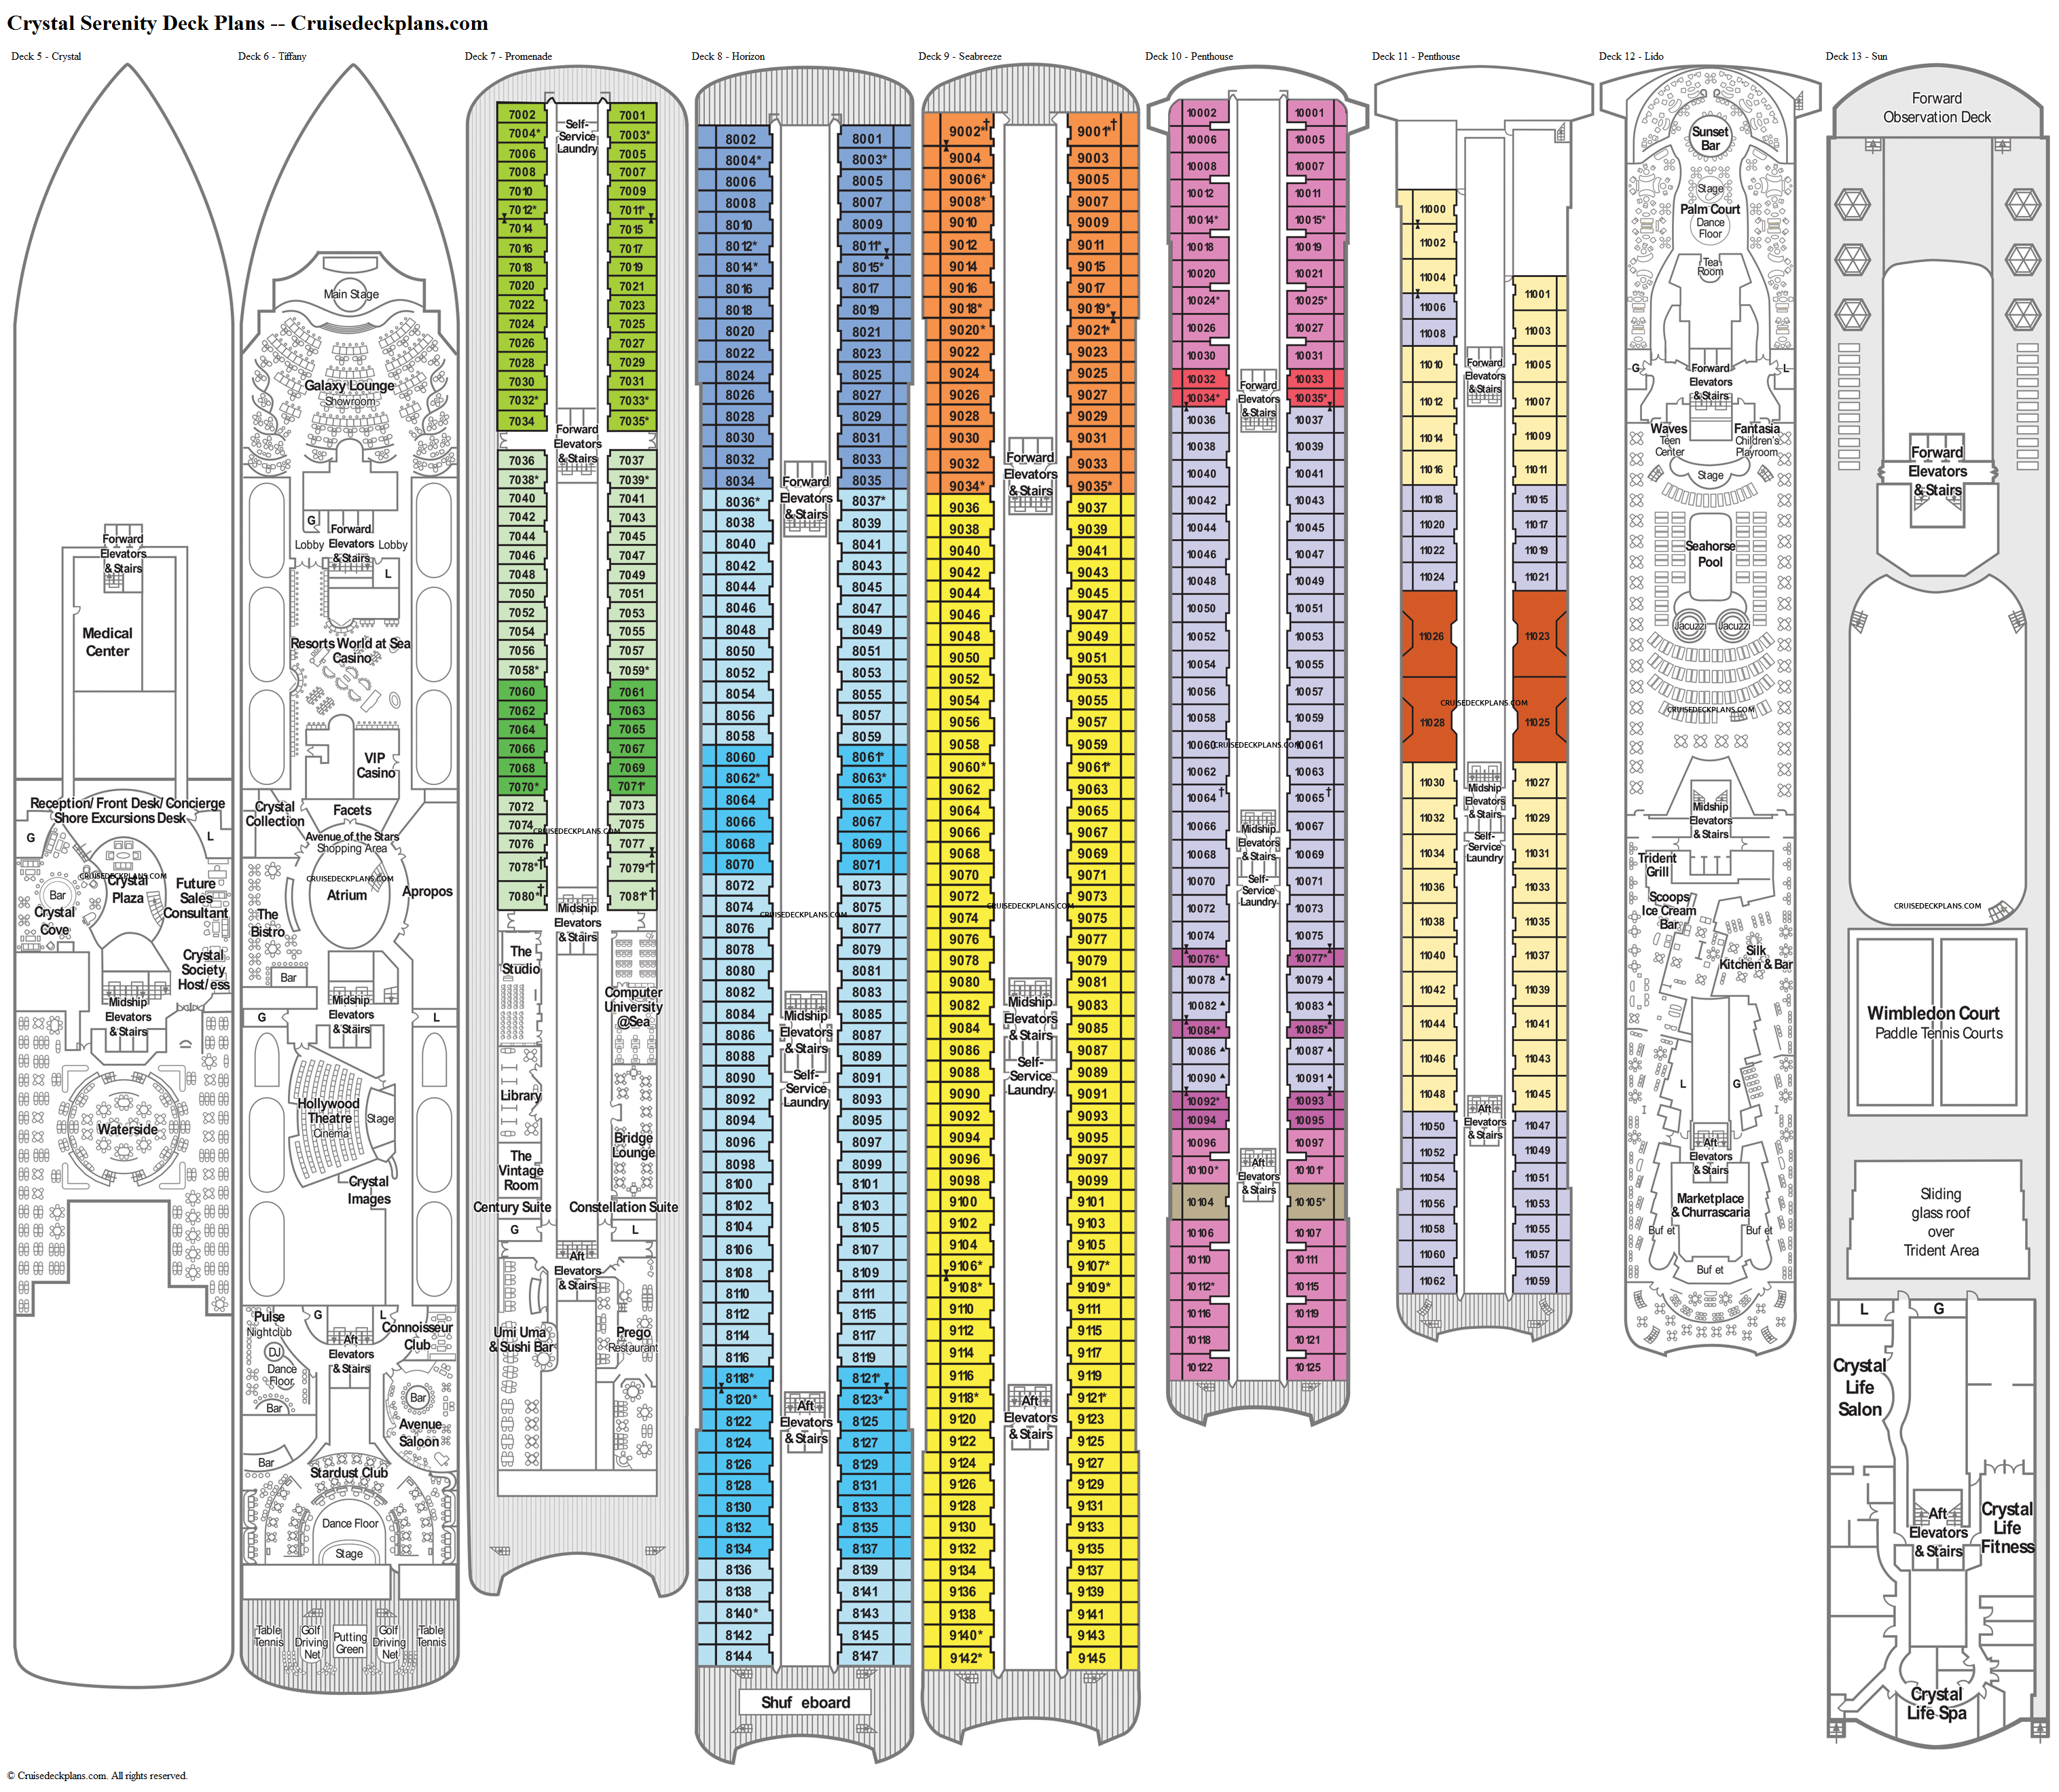 Crystal Serenity deck plans image